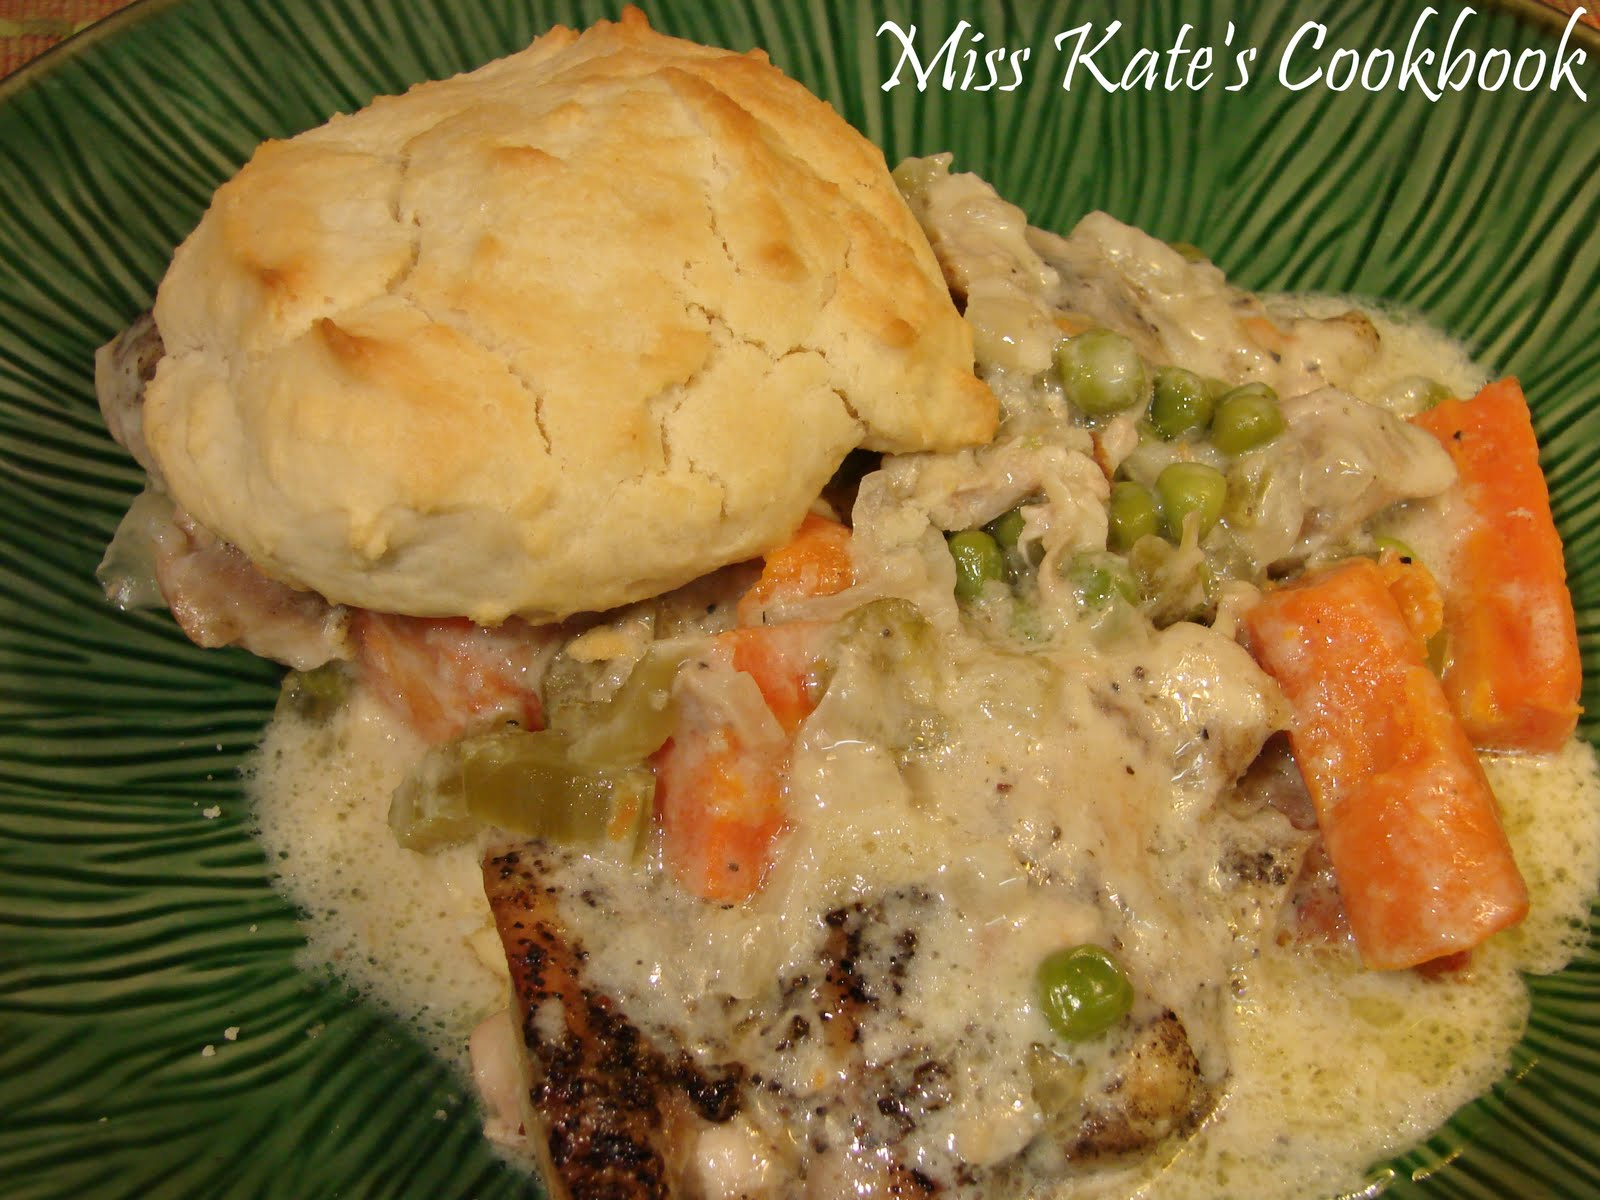 Creamy Slow Cooker Chicken With Biscuits Recipes — Dishmaps